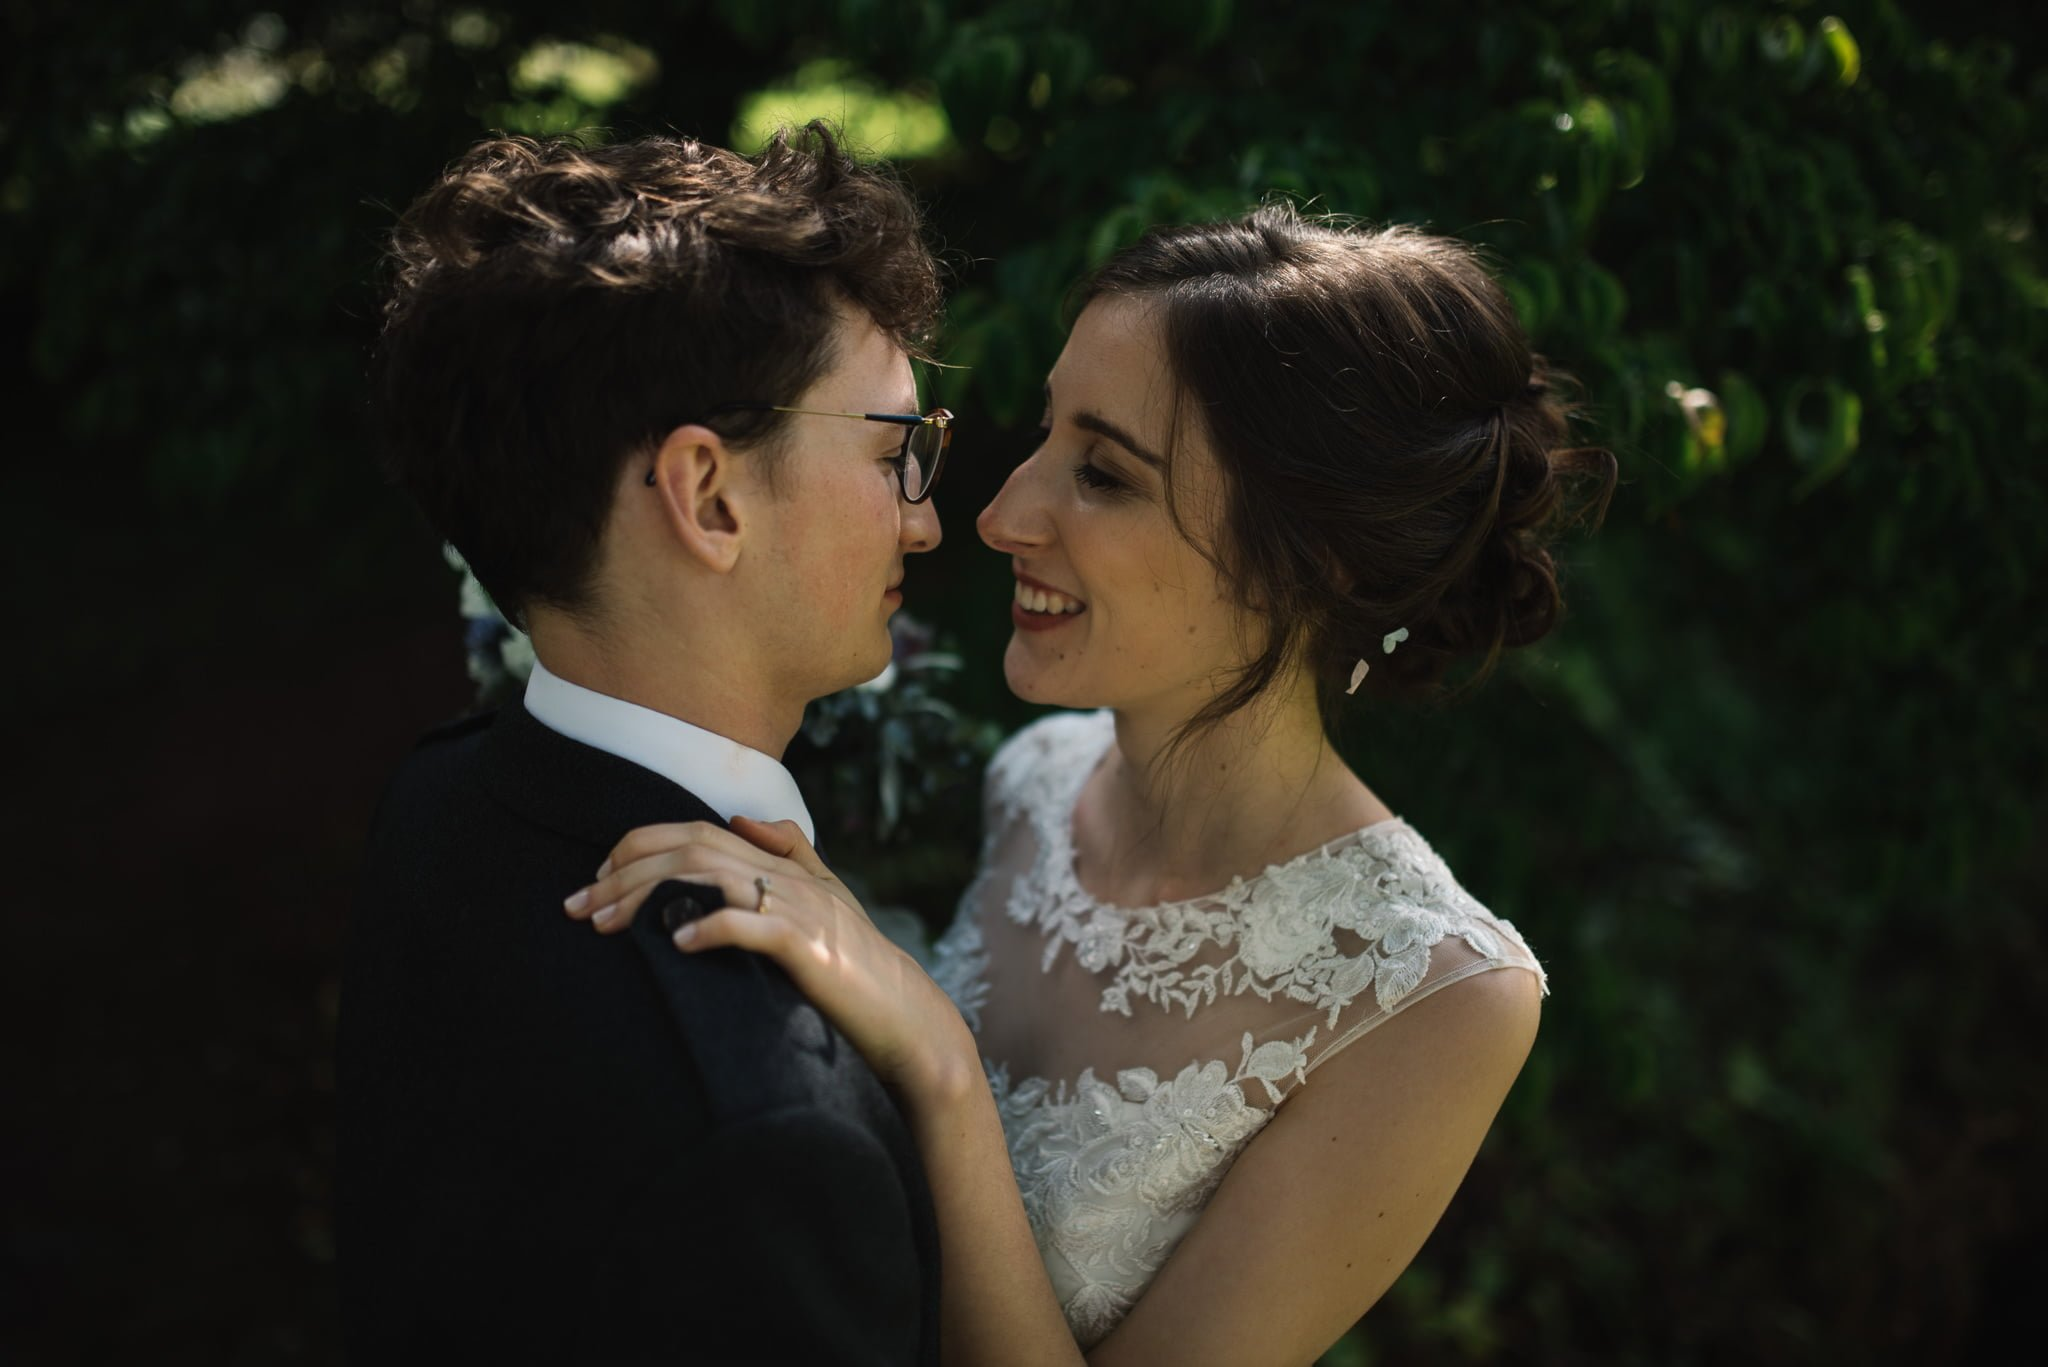 wedding couple embracing her hand on his shoulder